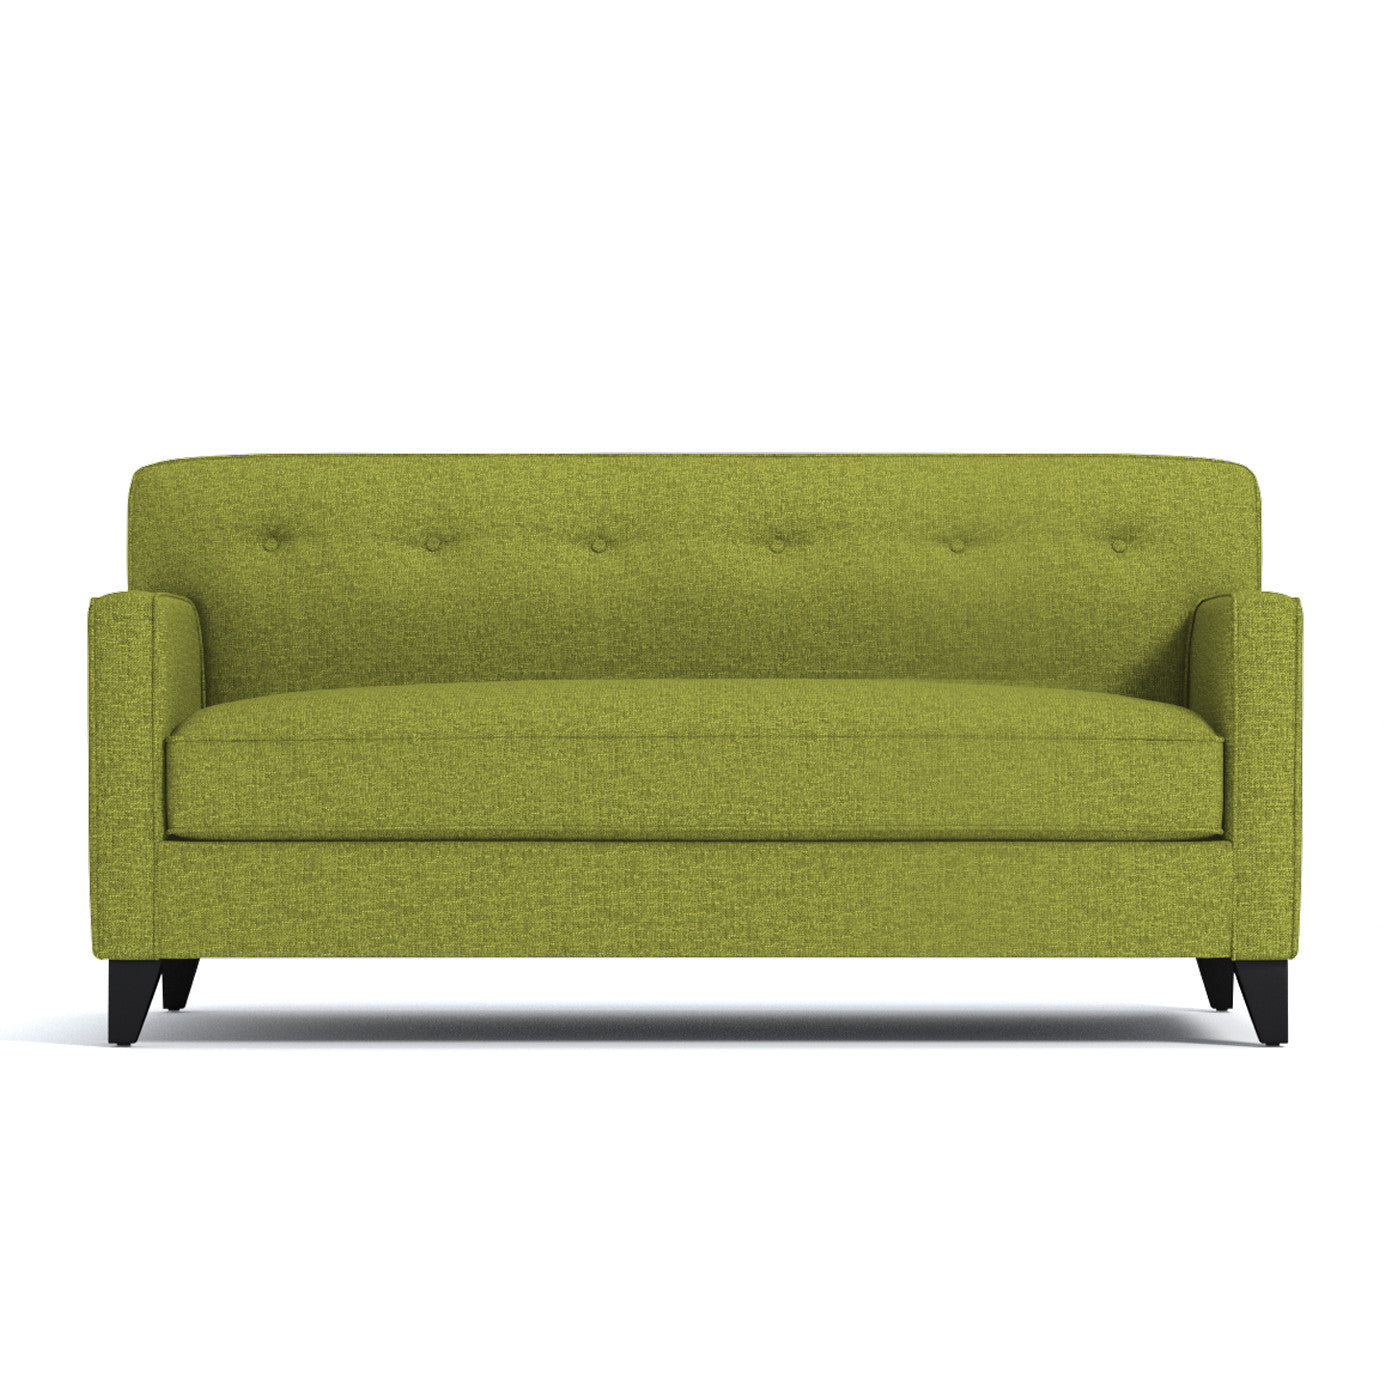 Small Sectional Sofa For Apartment: Harrison Apartment Size Sofa From Kyle Schuneman CHOICE OF